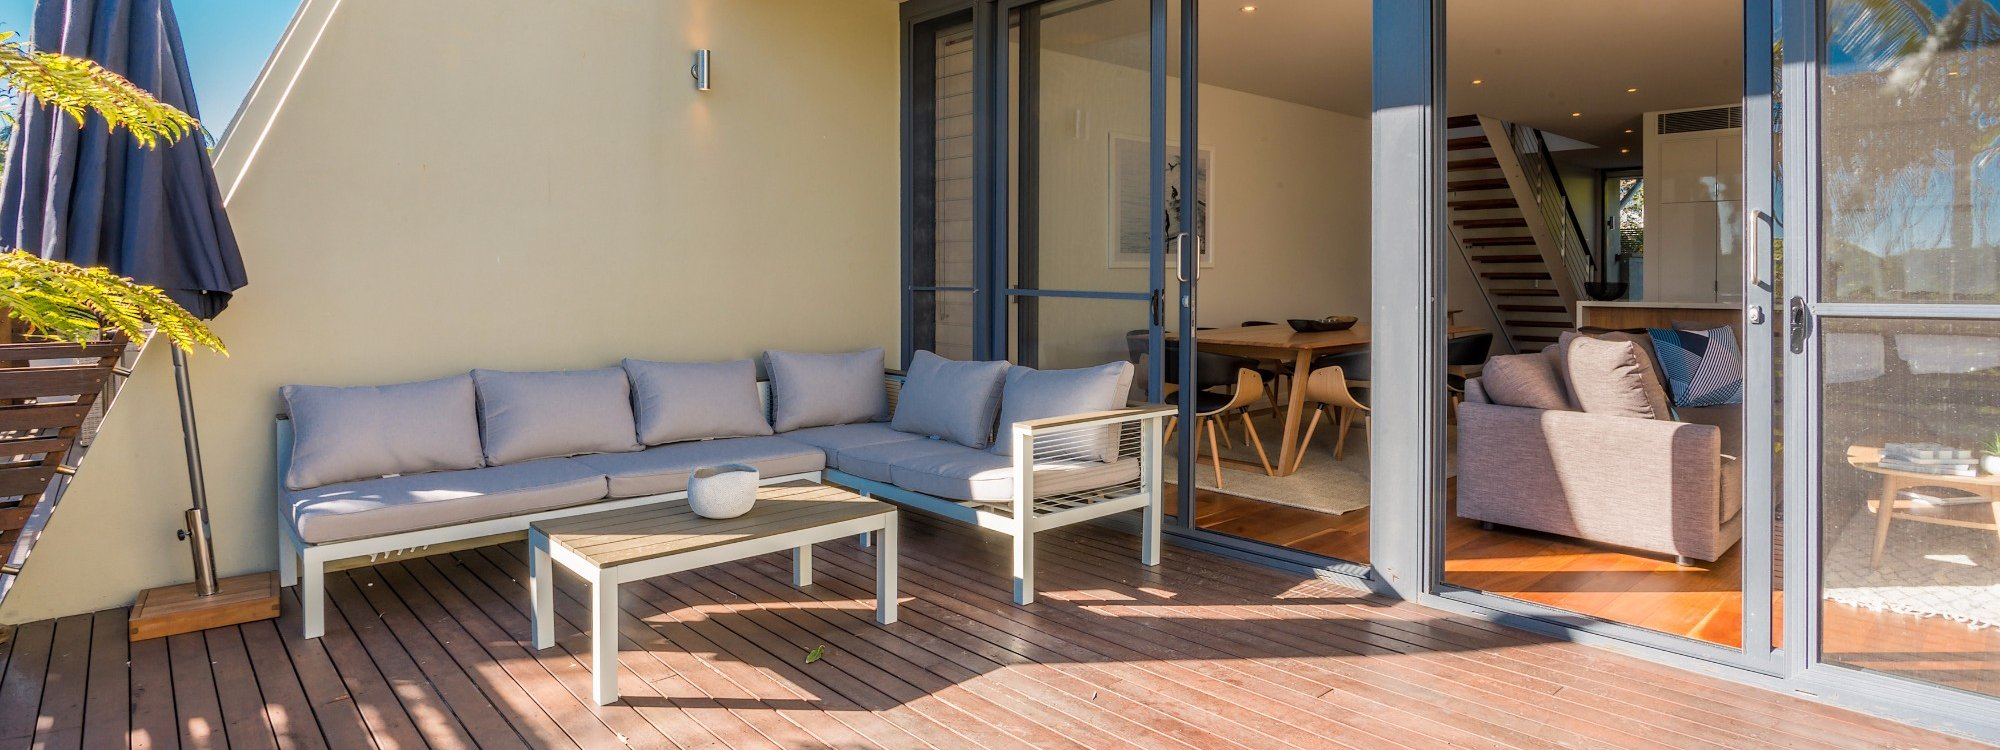 Kiah Beachside - Belongil Beach - Byron Bay - deck with outdoor lounge